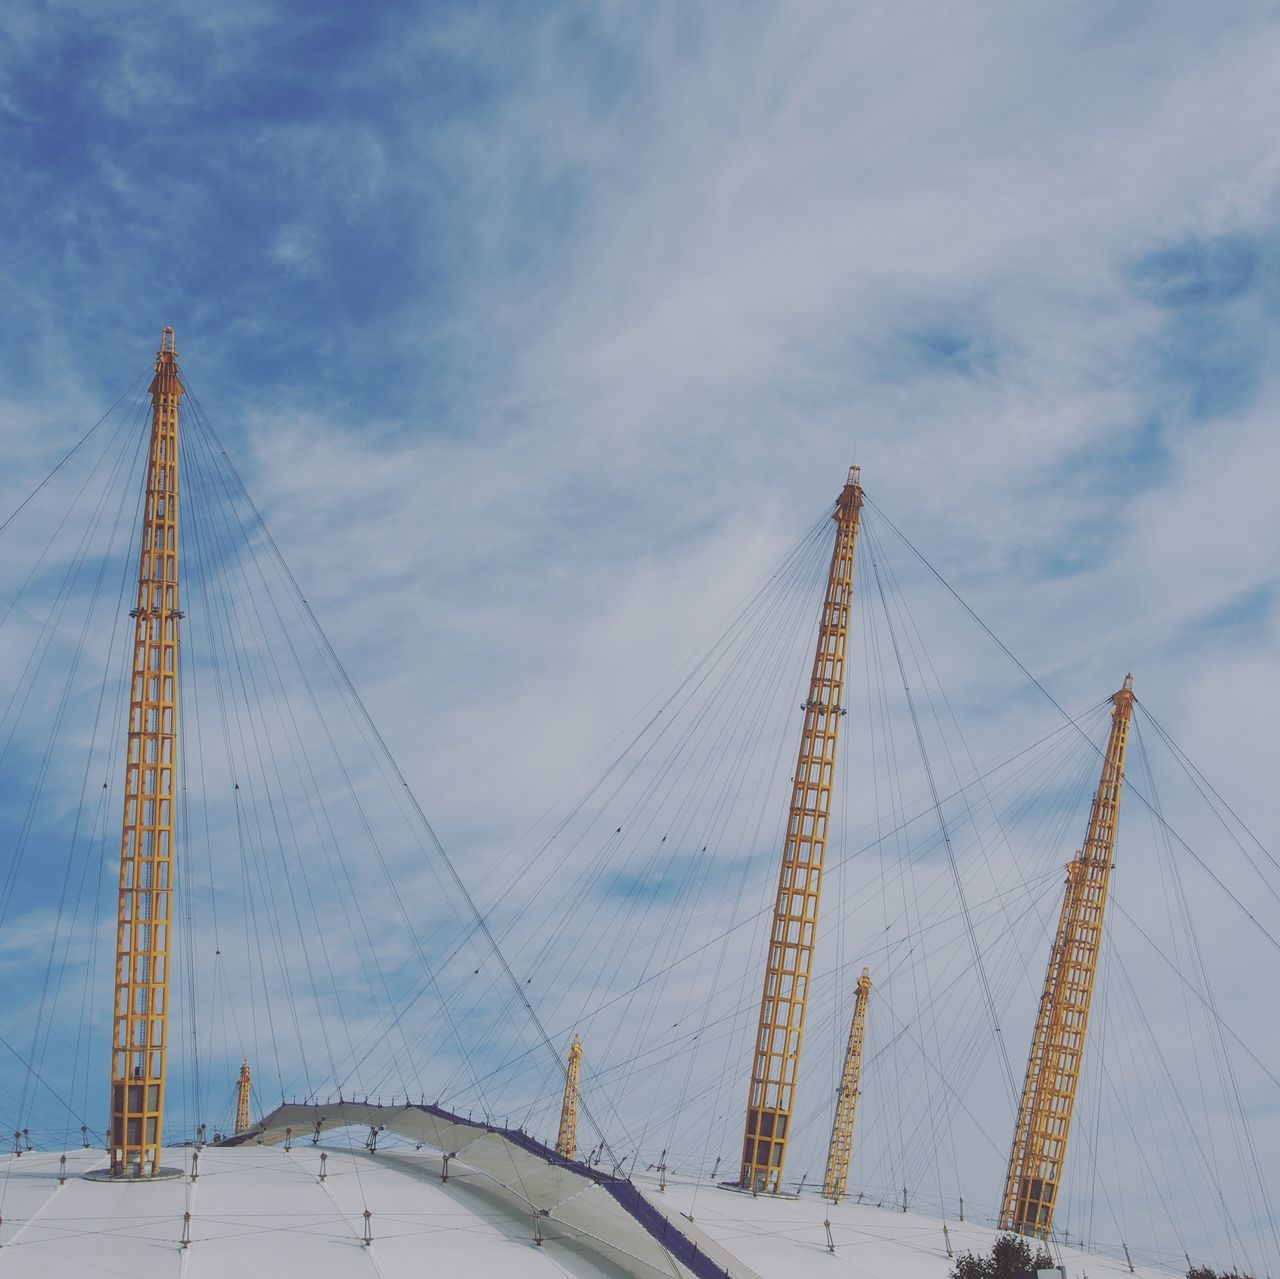 Outdoors Built Structure Connection Bridge - Man Made Structure Day O2 Arena Cloud - Sky No People Travel Tourism